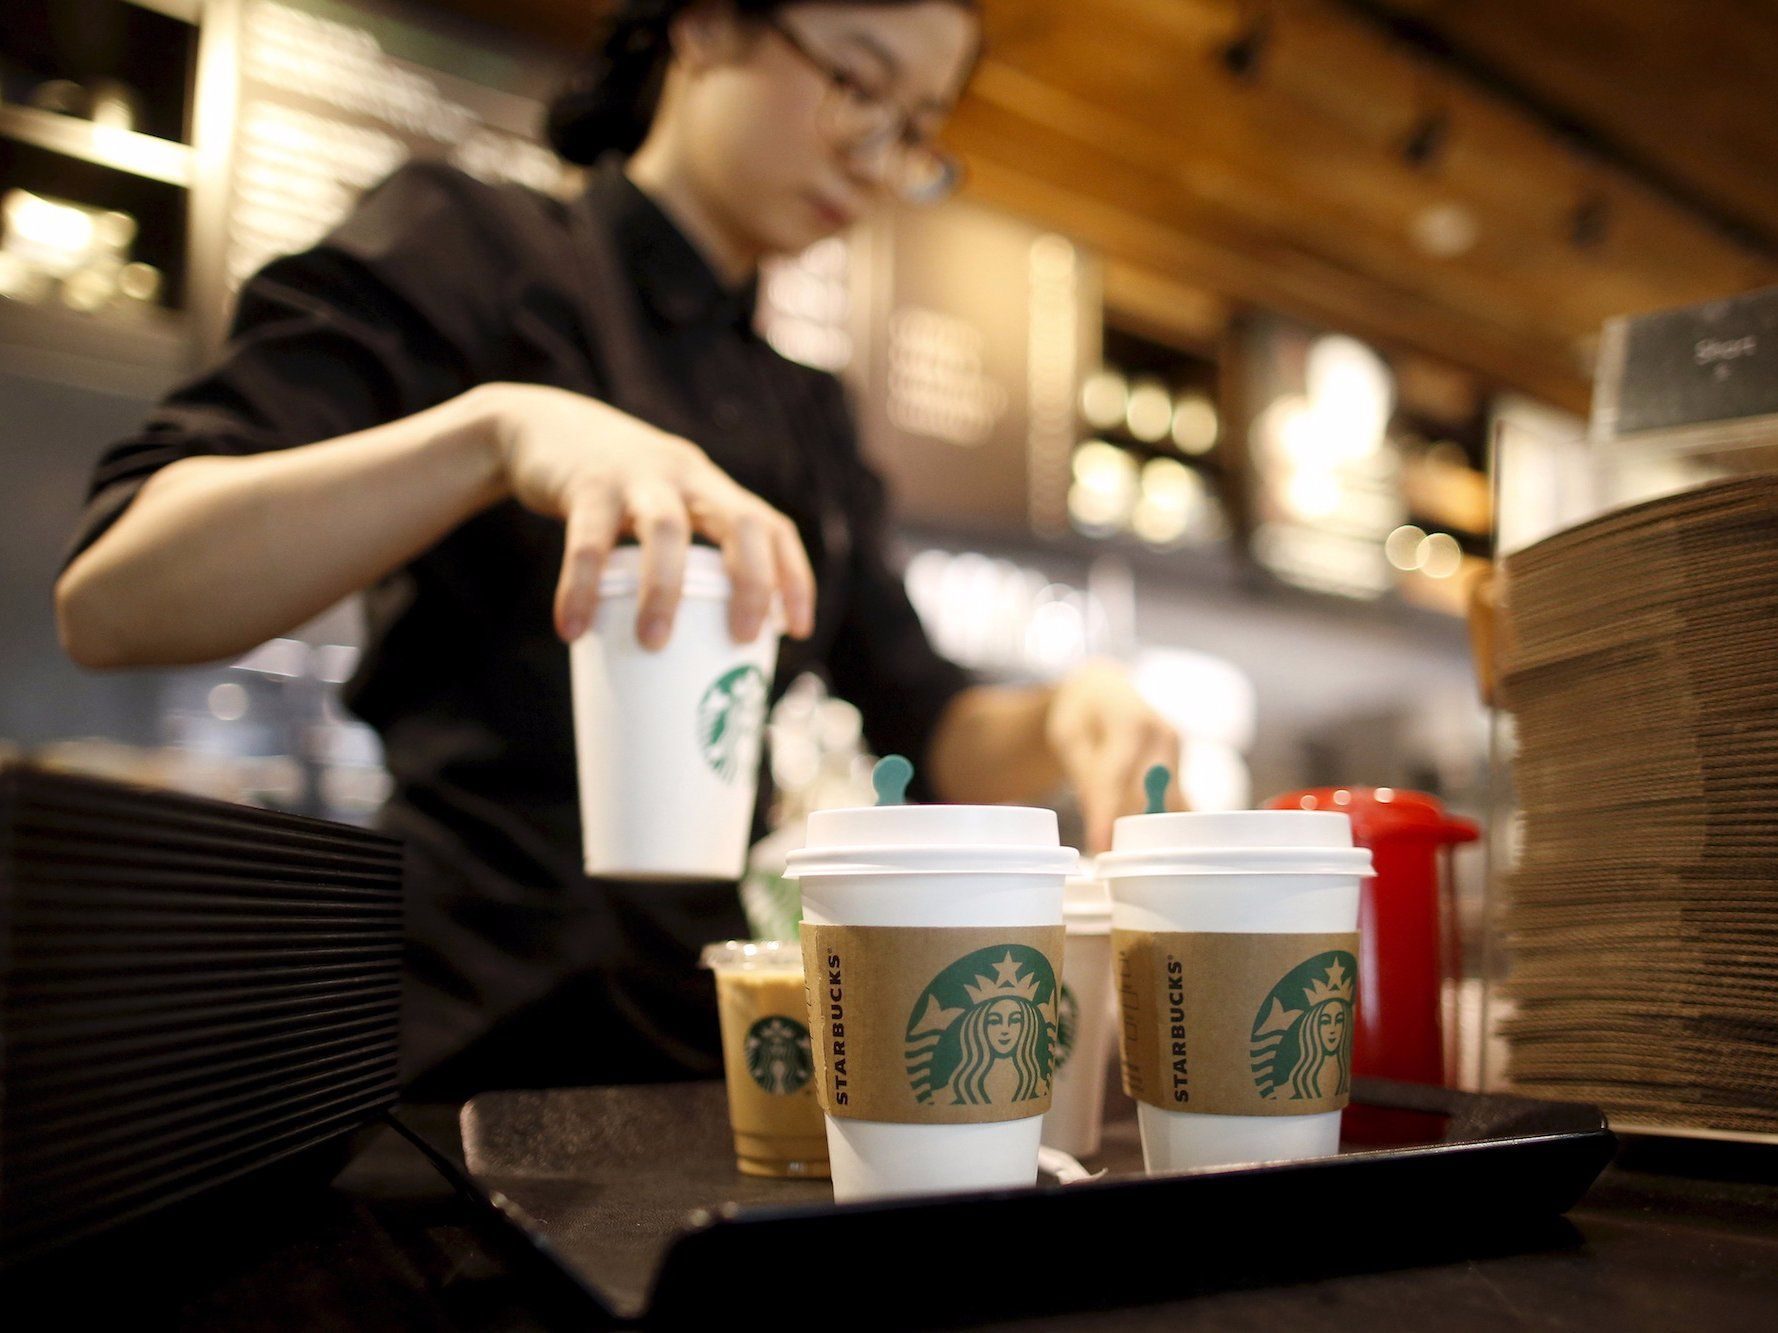 Starbucks stores will close nationwide next month in an